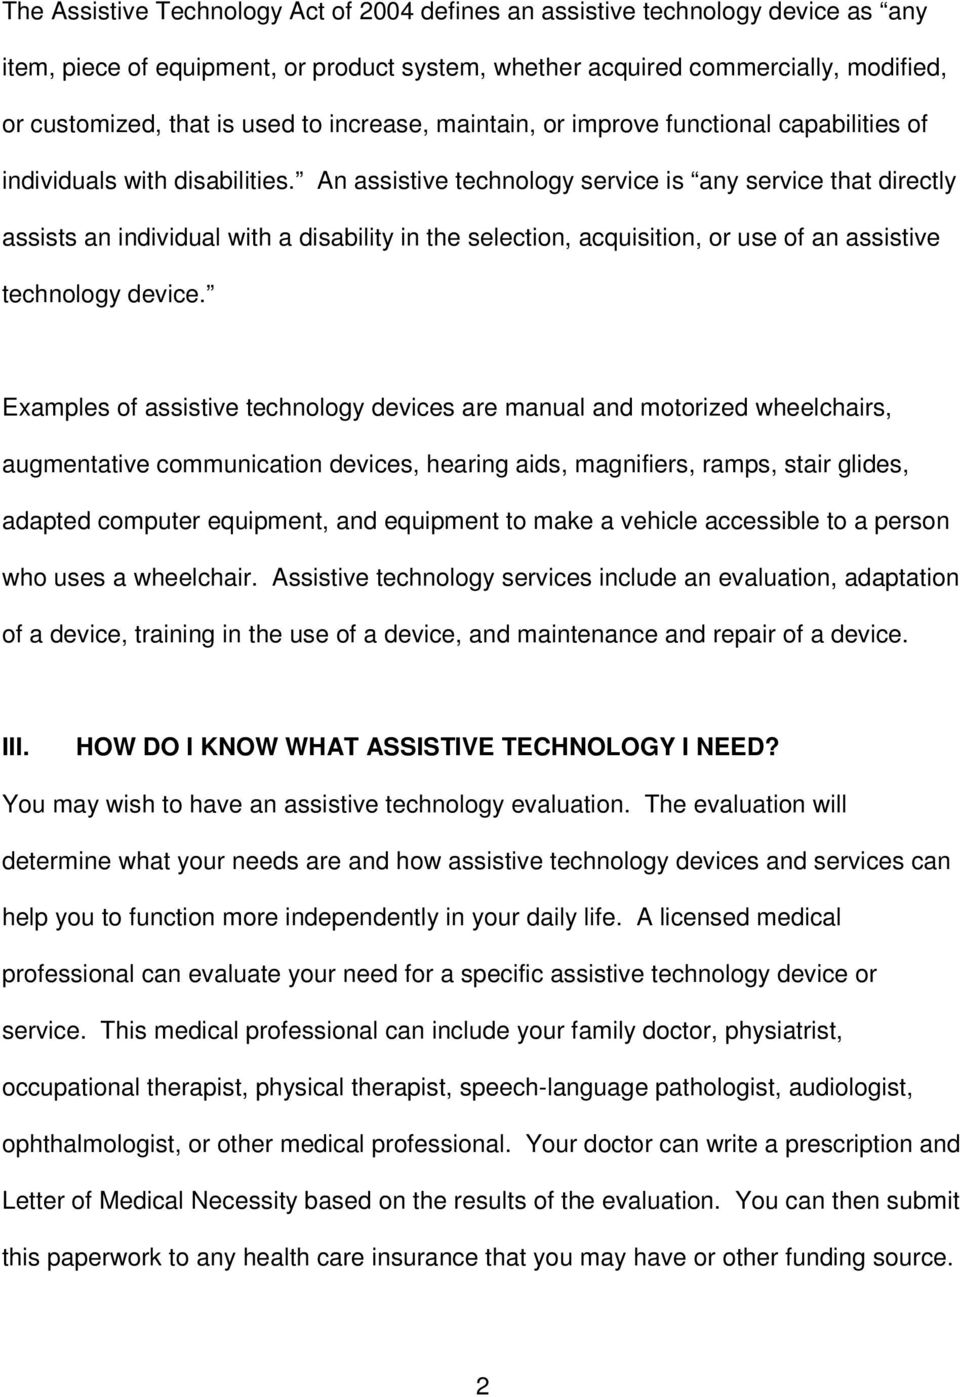 An assistive technology service is any service that directly assists an individual with a disability in the selection, acquisition, or use of an assistive technology device.